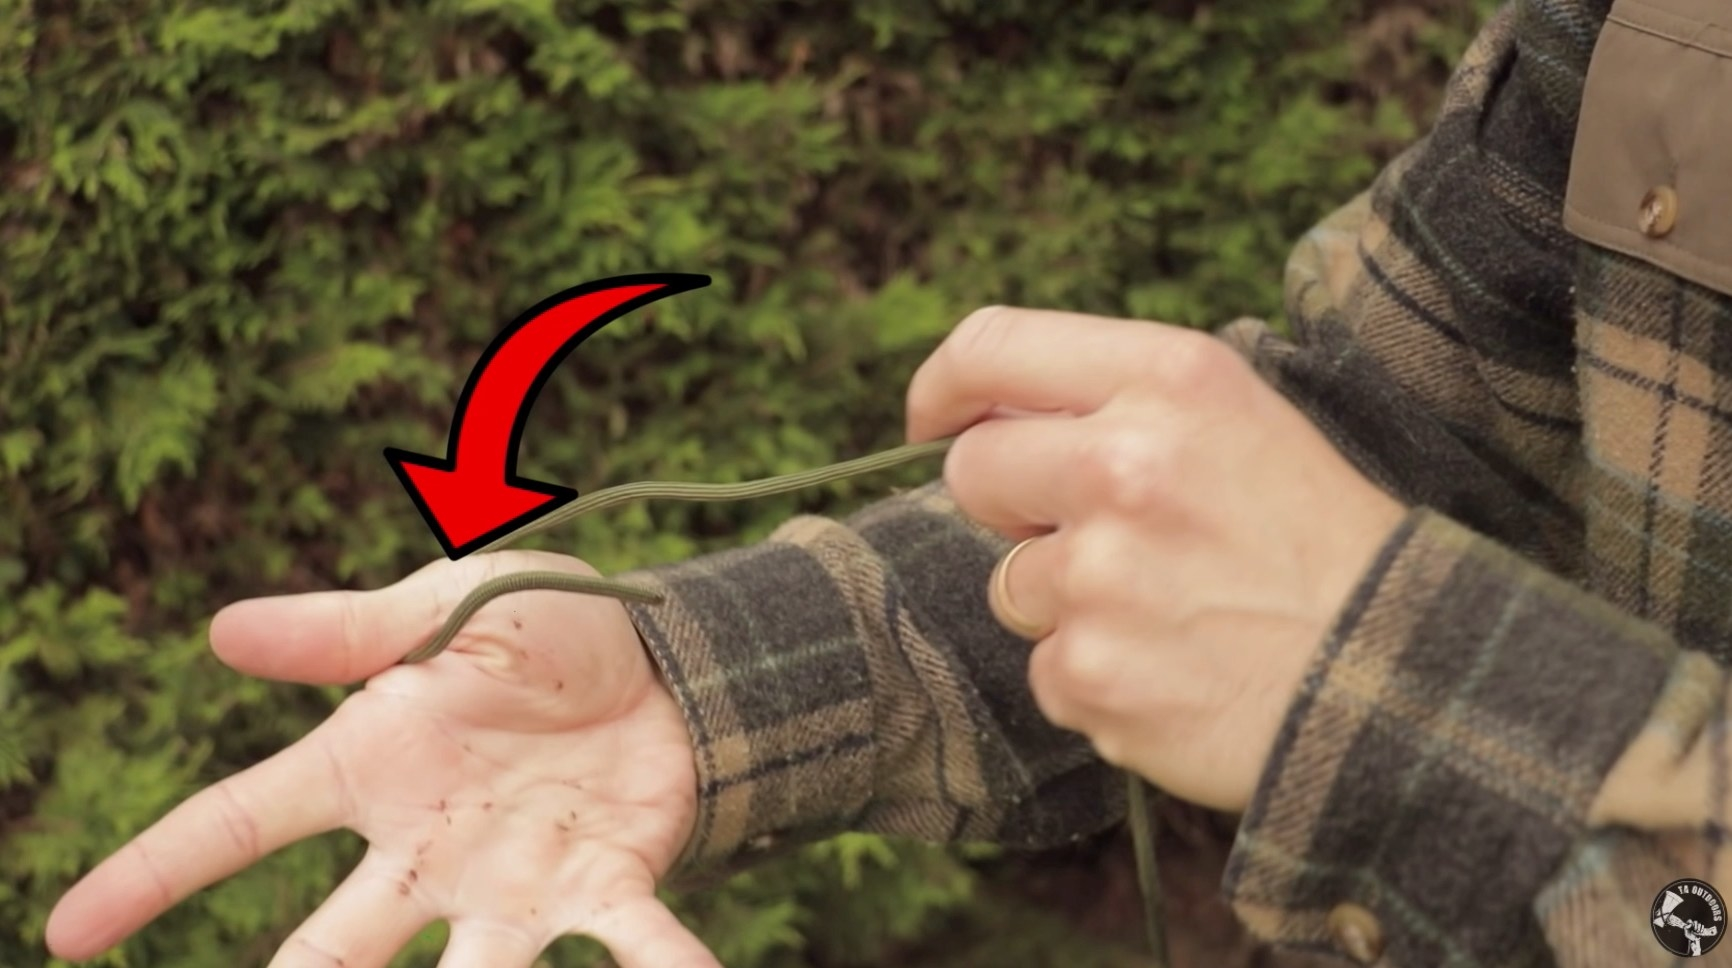 How to make a hank of rope